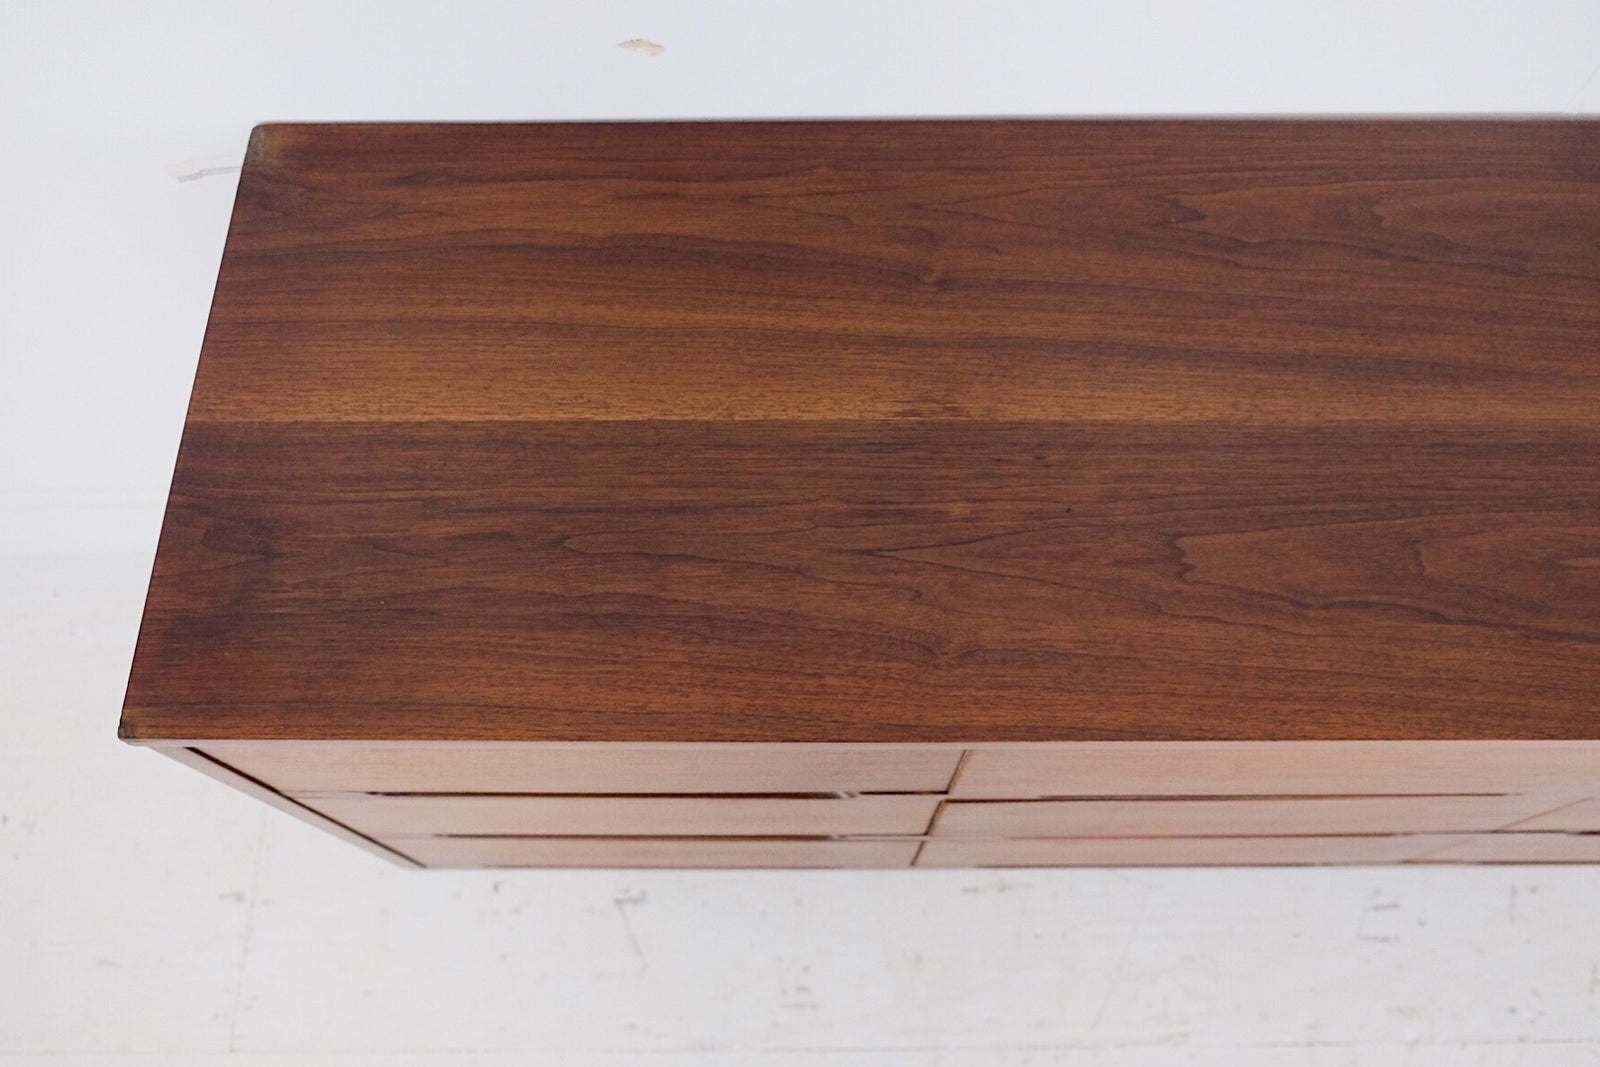 Carved Scooped Handles Mid Century Modern Low Dresser Nine Drawers